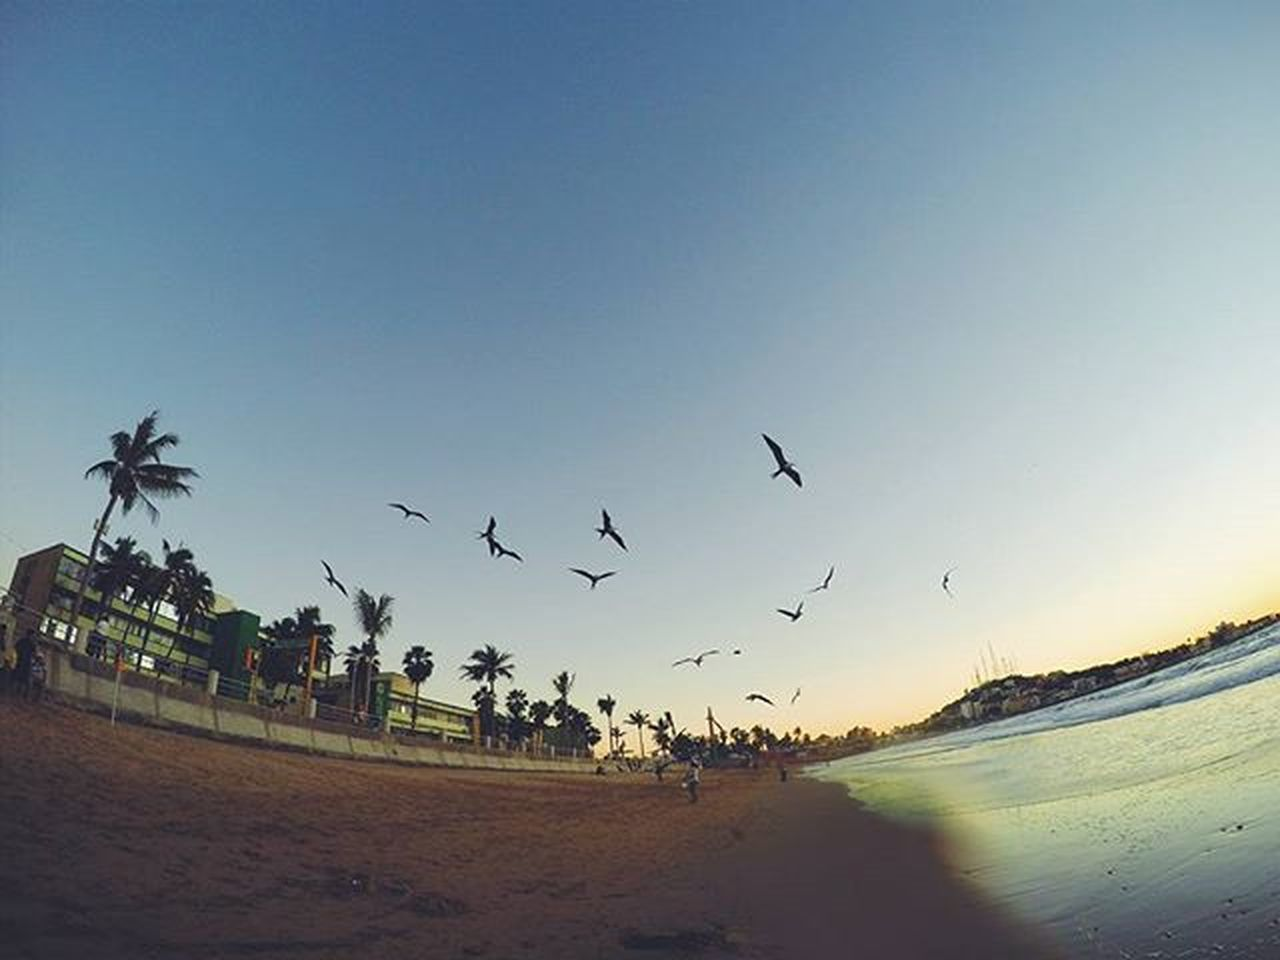 Take me back to my vacation! ! 🌞 In this picture we encountered a man who was walking around with a stick and all these birds would just follow him as if he was some kinda master splinter lol pretty awesome though! Gopro Goprohero4 Mazatlan Mexico VSCO Vacation Exploring 2016 Beach Gopromx Birdmaster TBT